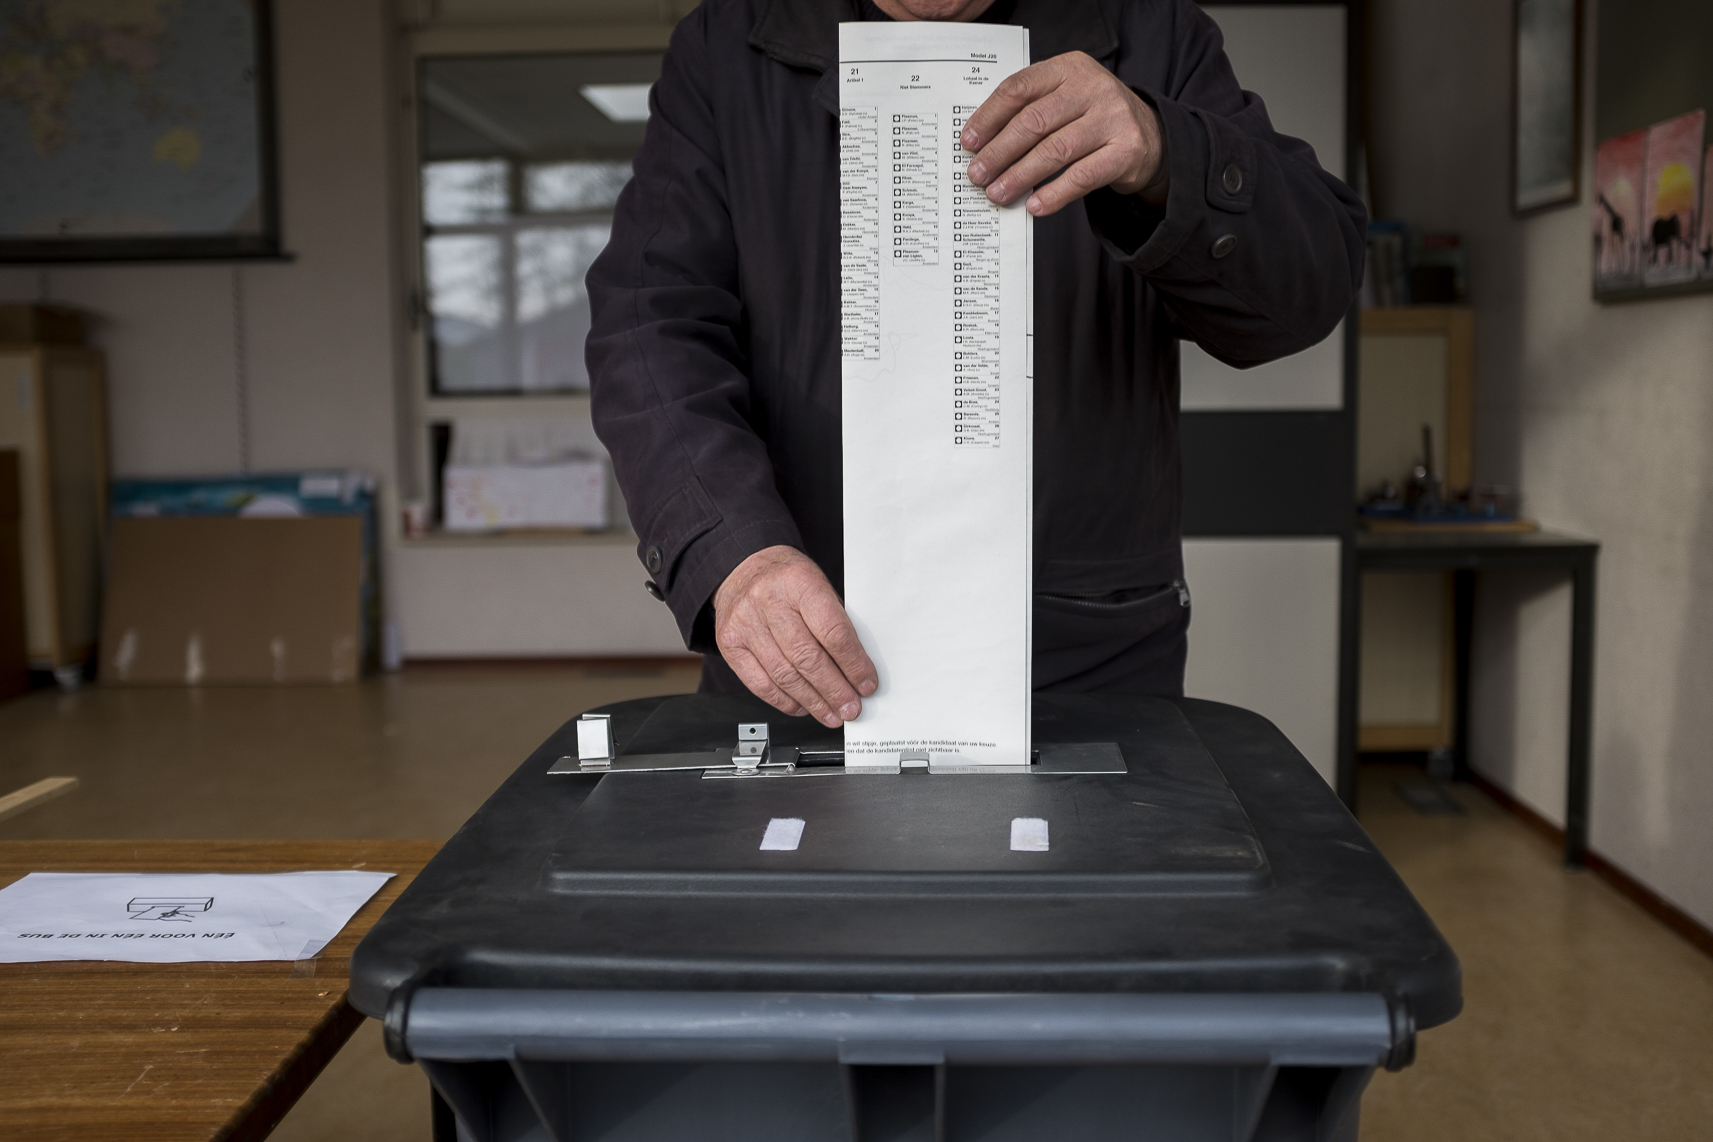 A man casts his ballot for the Dutch general elections at a polling station set up in a school in Staphorst, Netherlands, Wednesday, March 15, 2017.